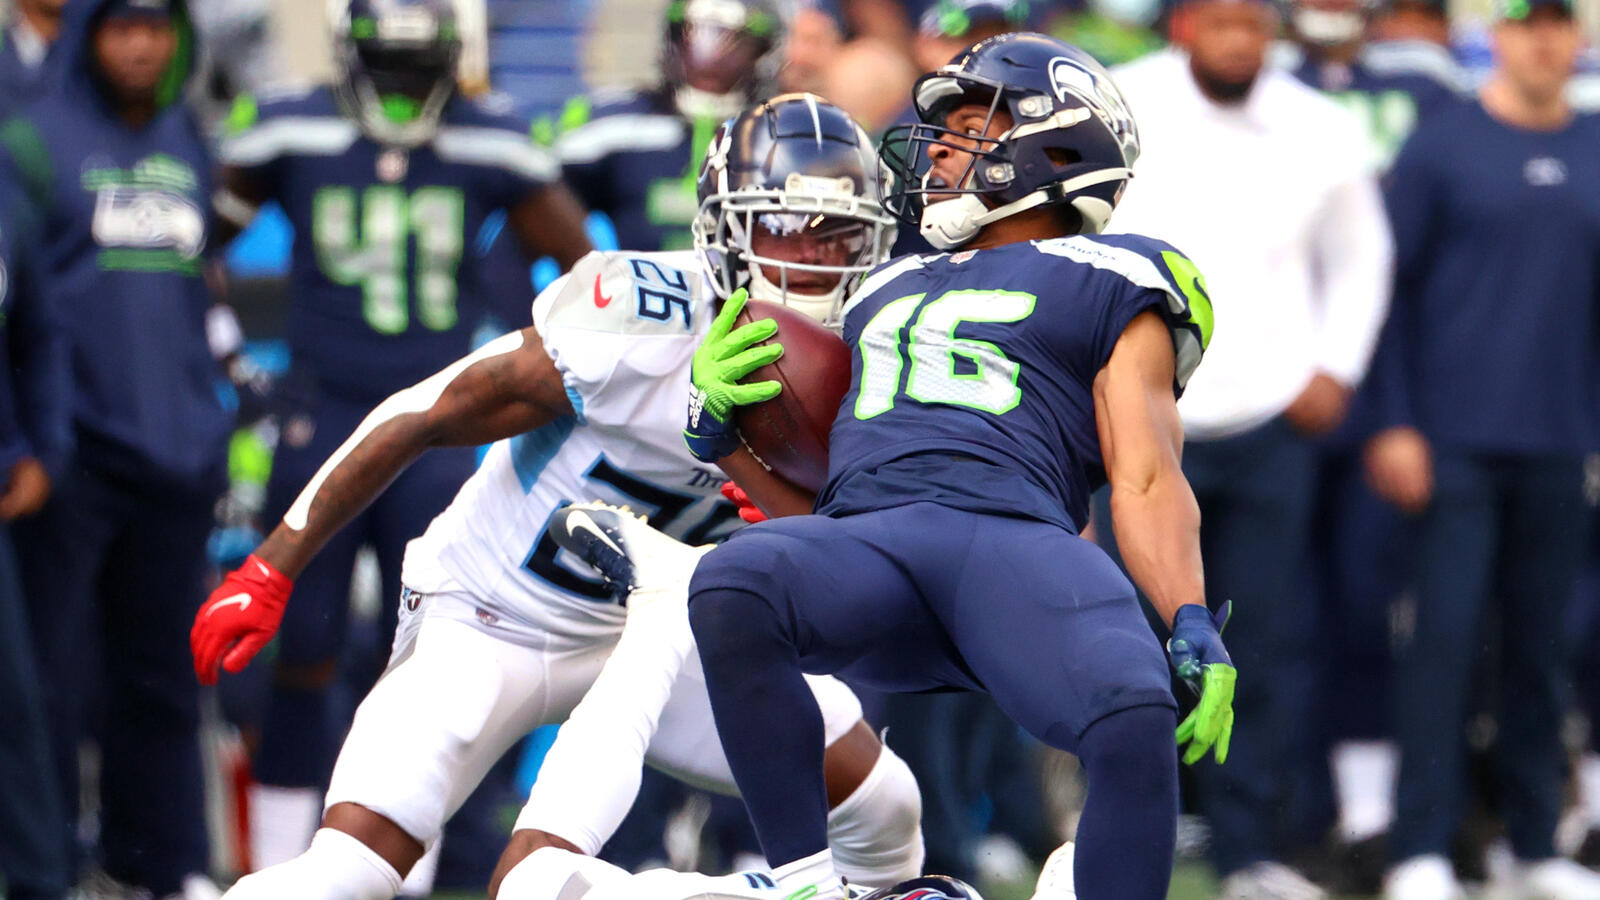 Takeaways from Seahawks 33-30 overtime loss to Titans